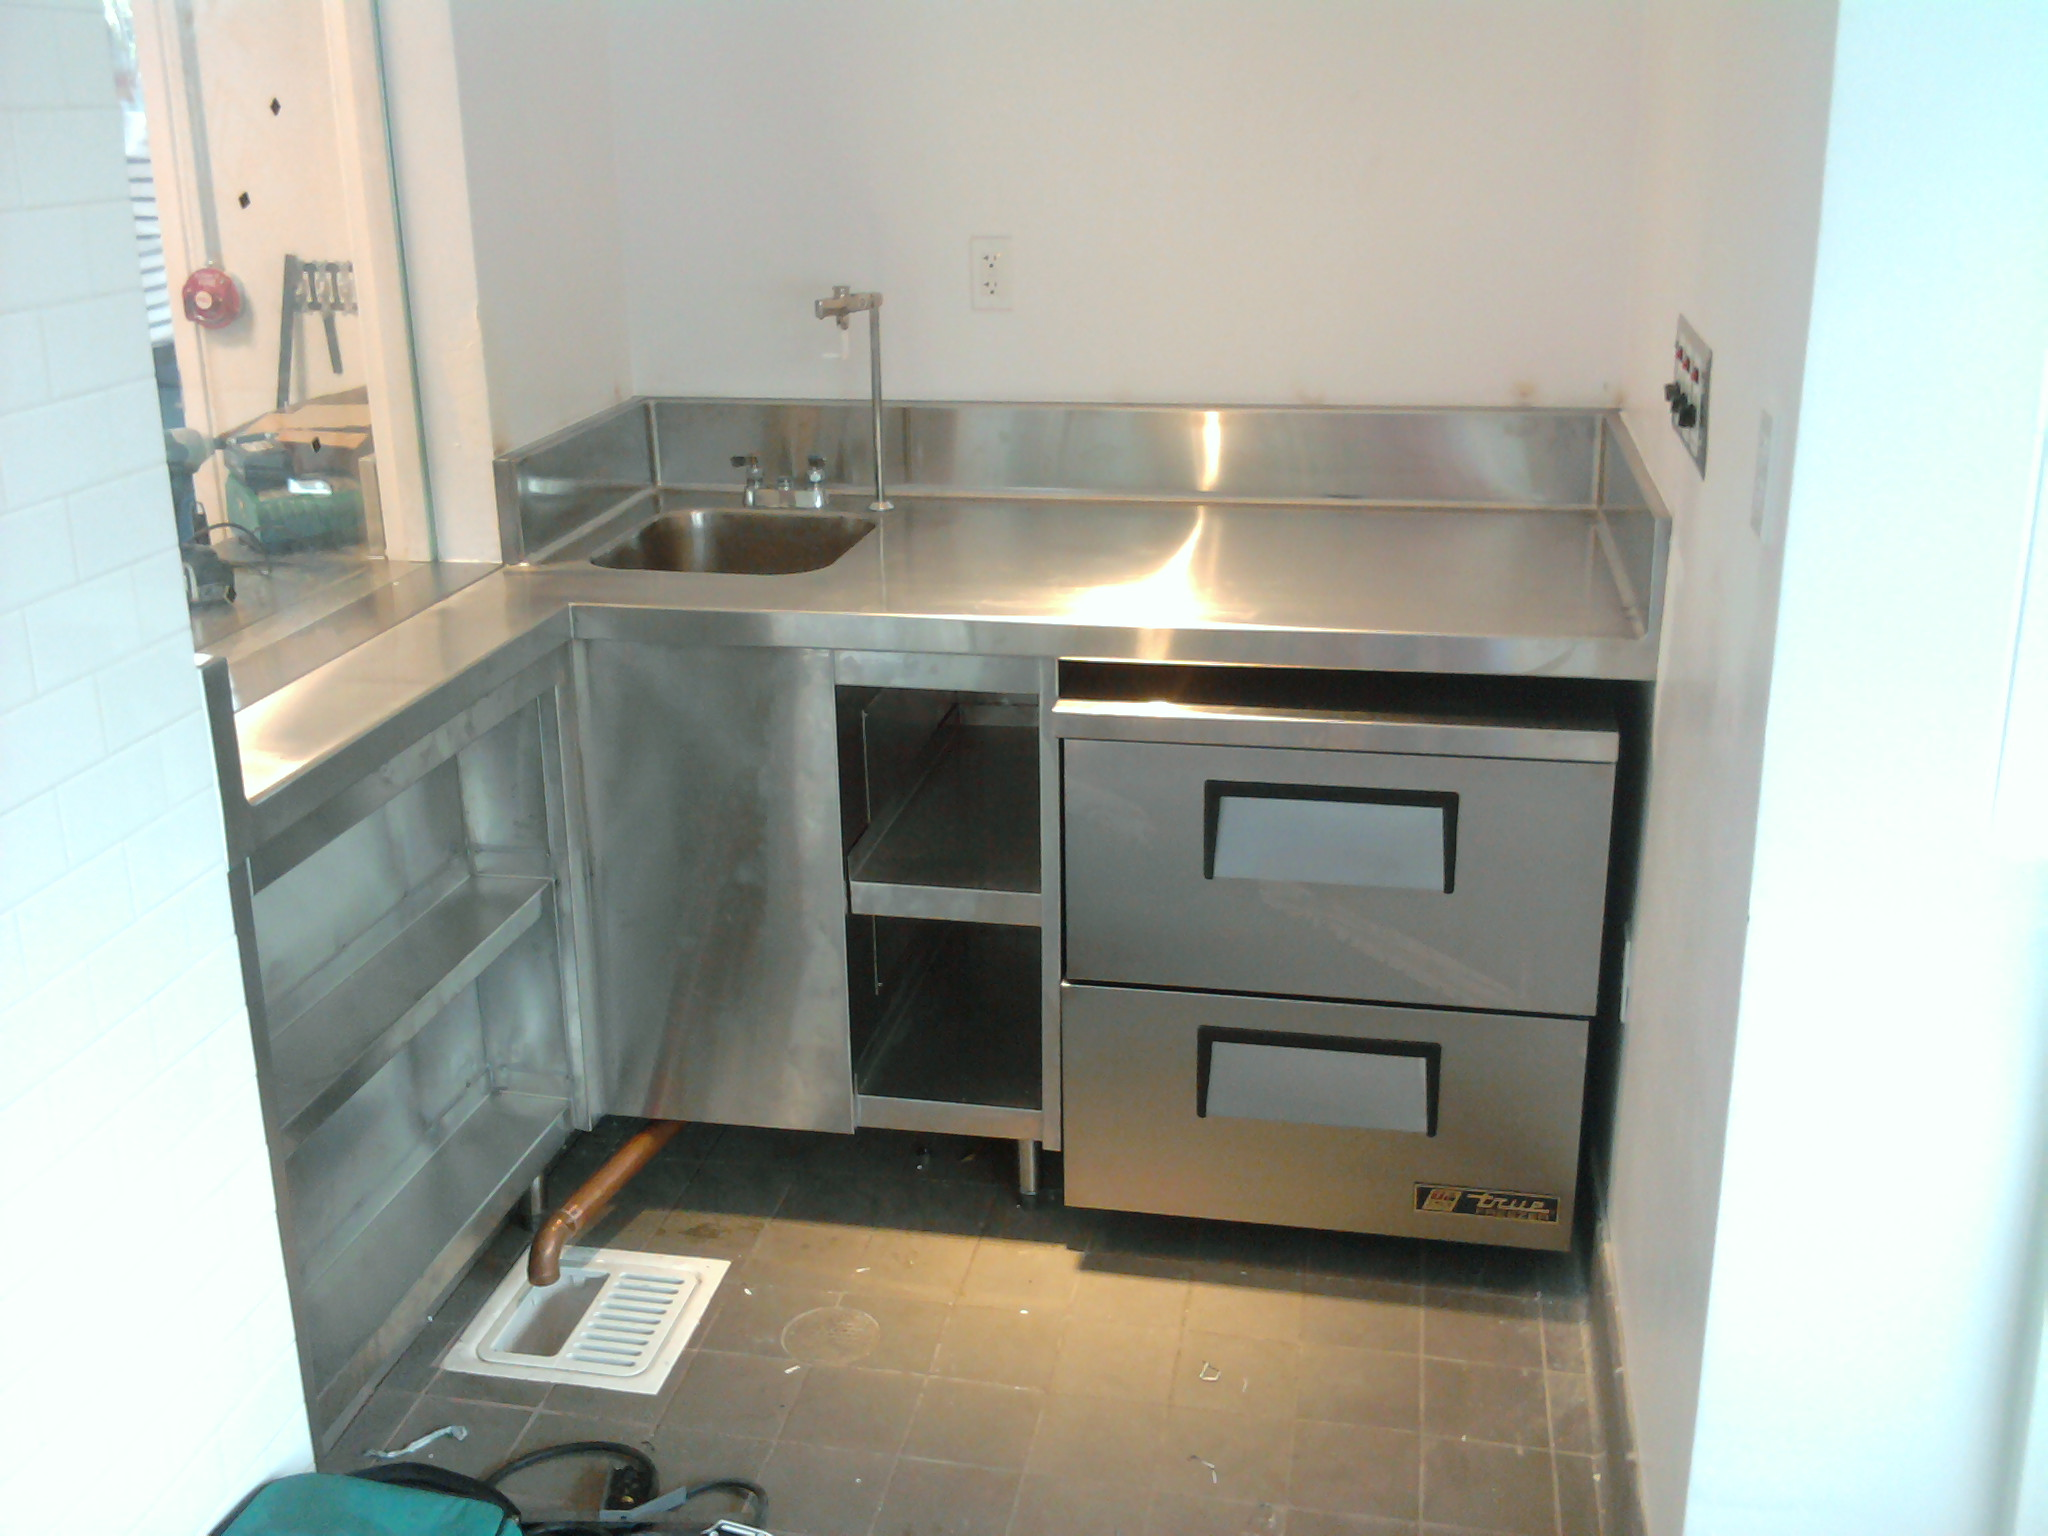 Delightful Stainless Steel Countertop With Under Counter Shelves